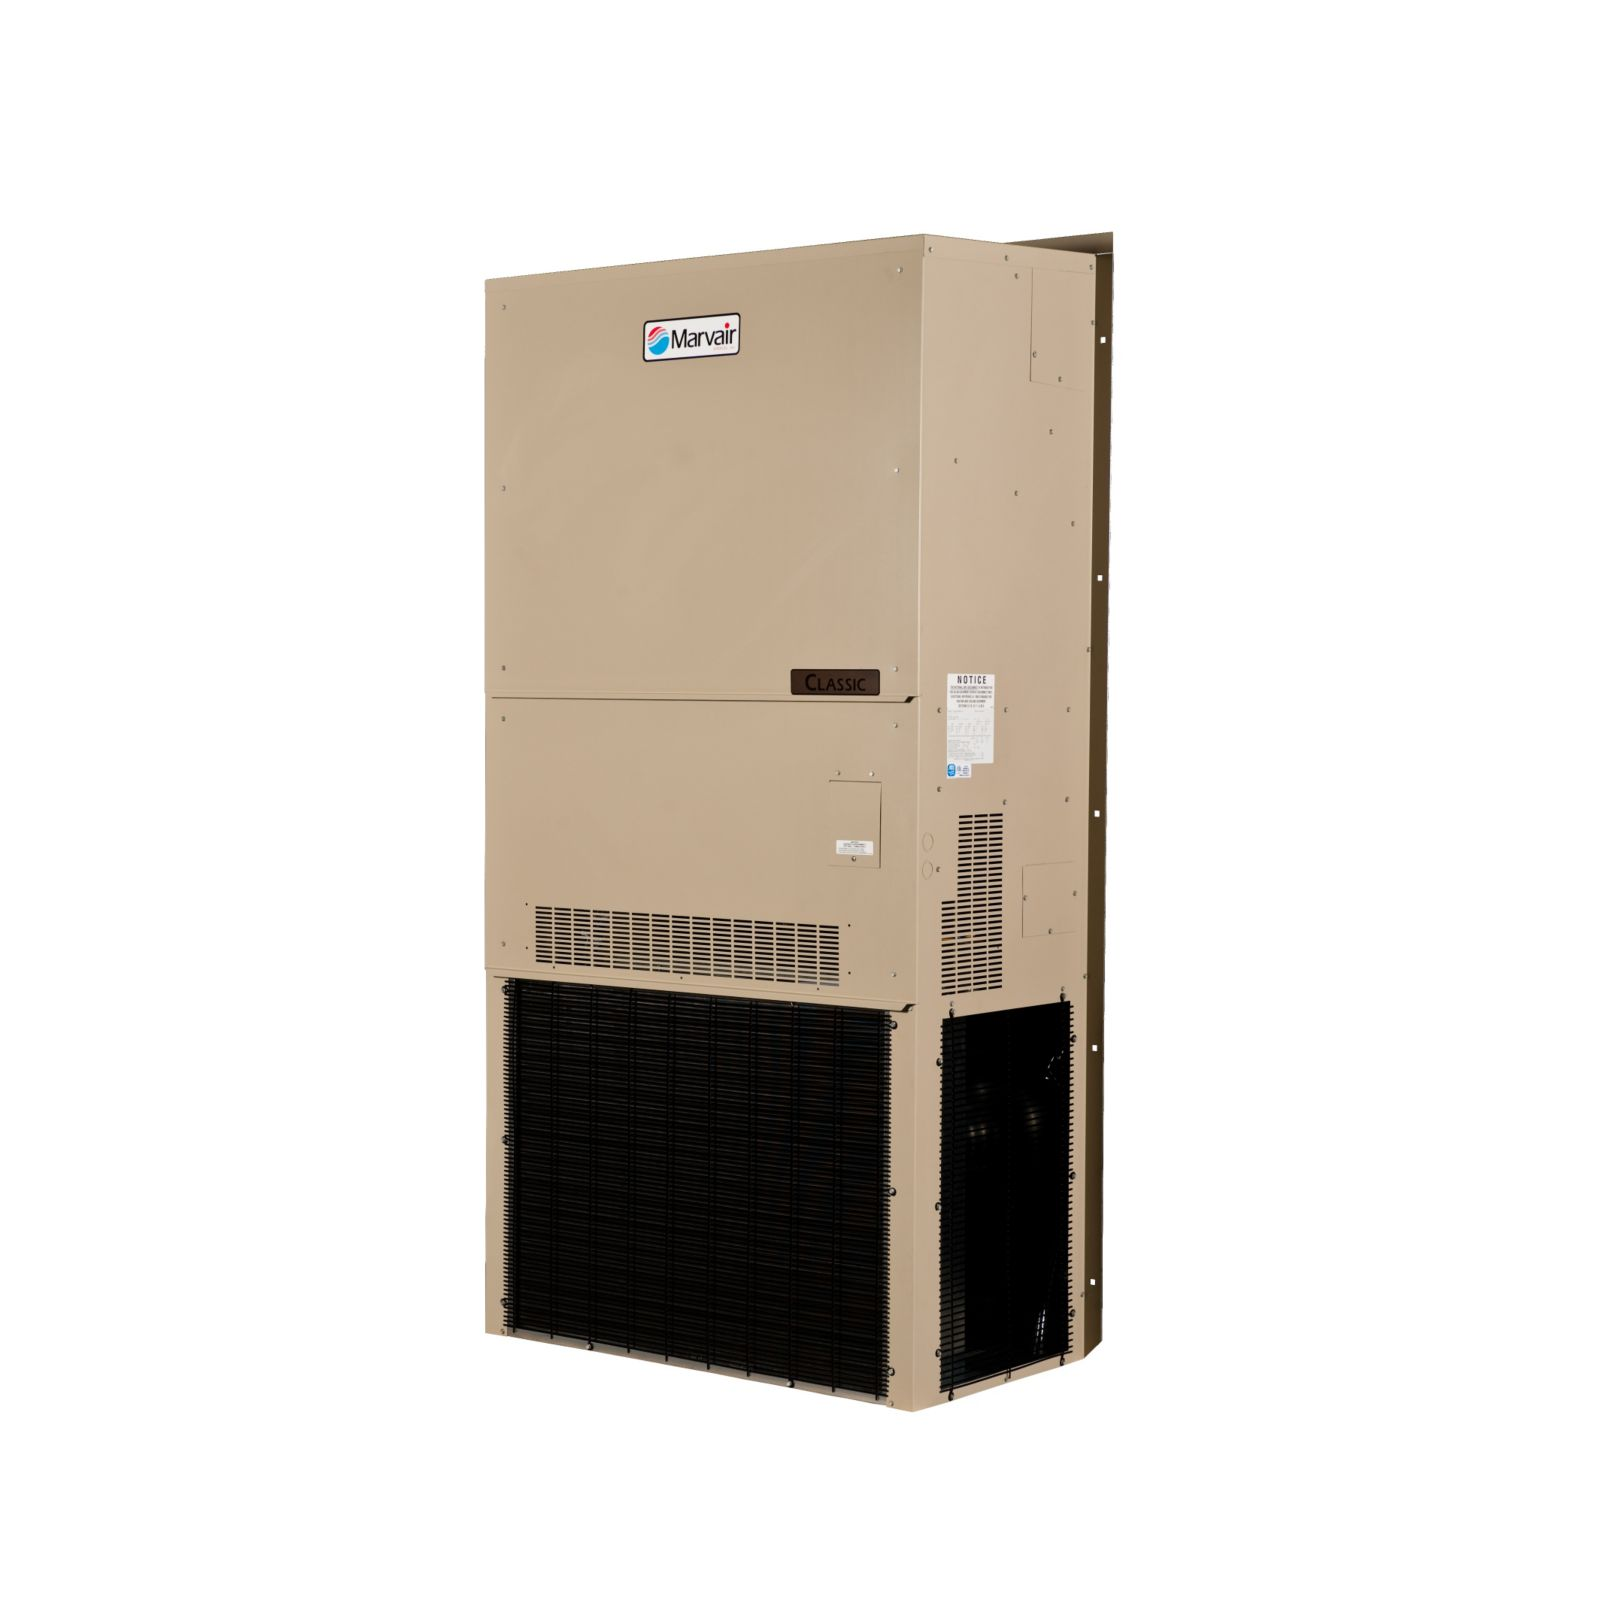 Marvair AVPA30HPA000NU-A2-100 - Wall Mount Heat Pump, Classic, 2 1/2 Ton, 208-230/1, No Heat, Manual Damper, Scroll, R410A